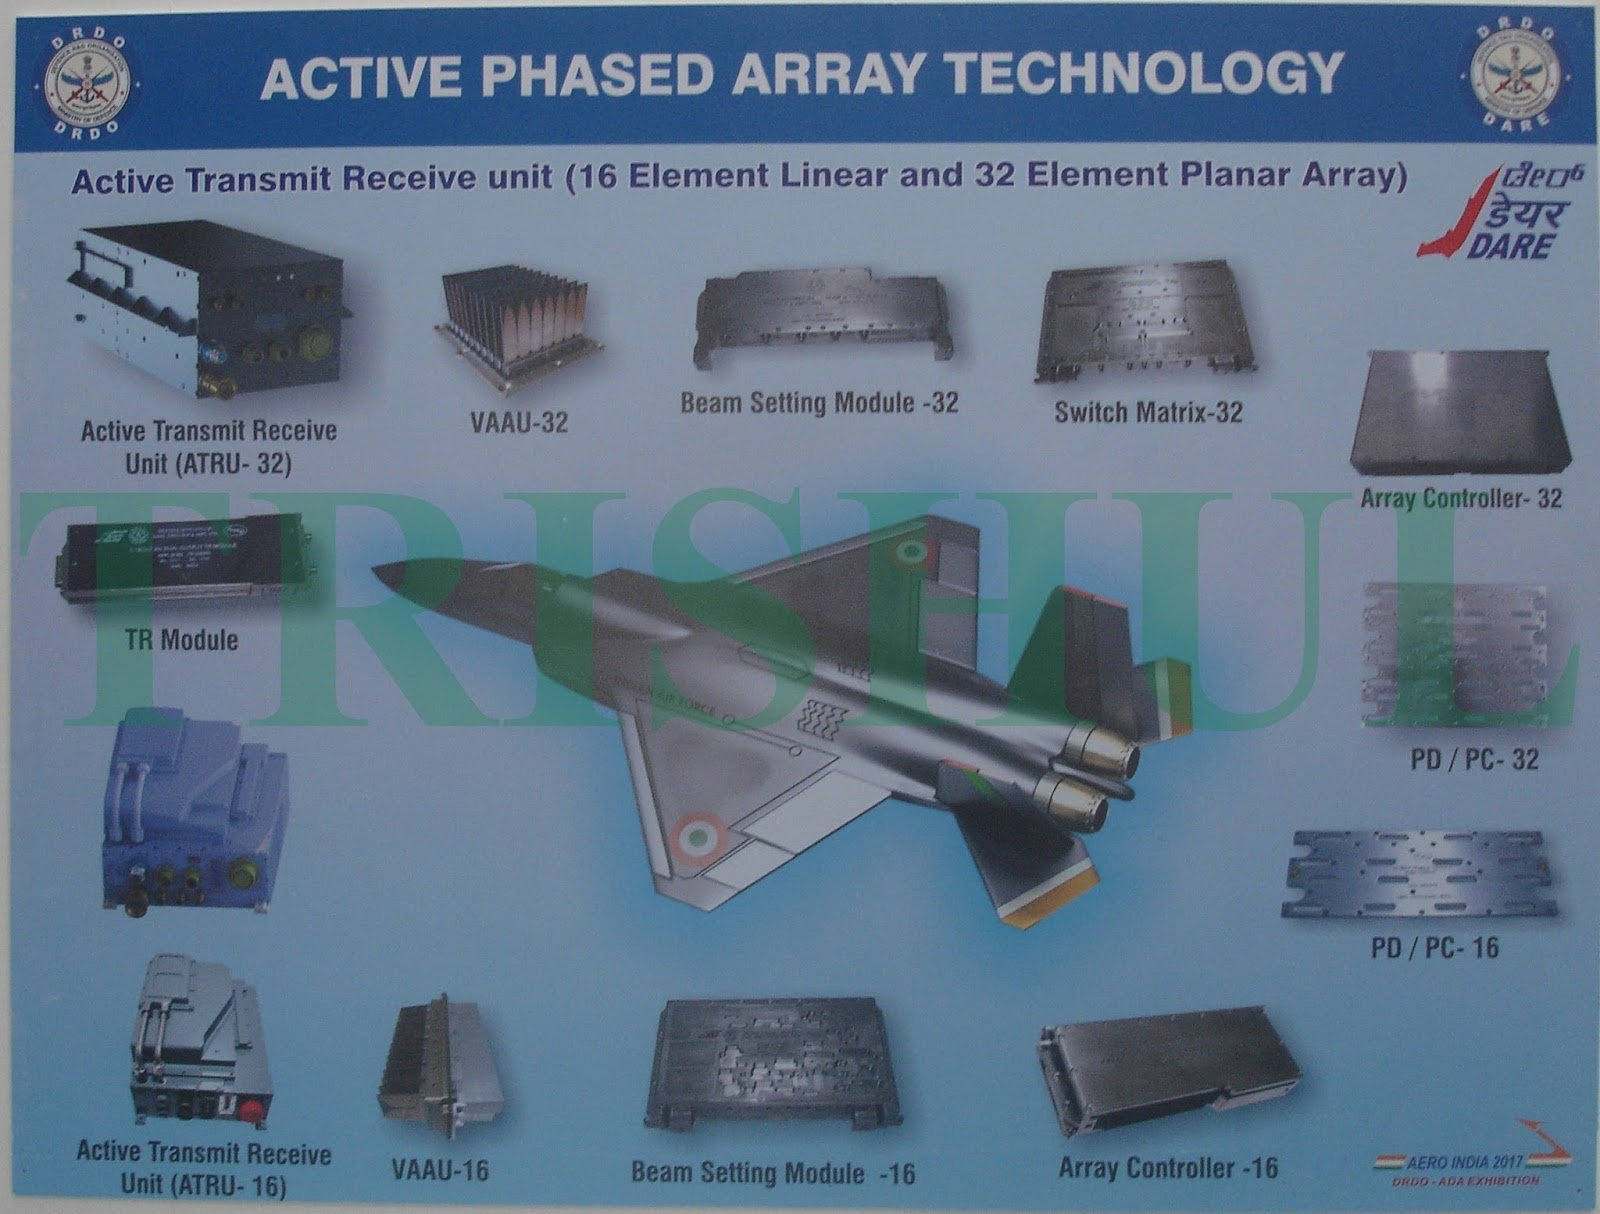 DARE-developed Sub-systems for FGFA & AMCA.jpg